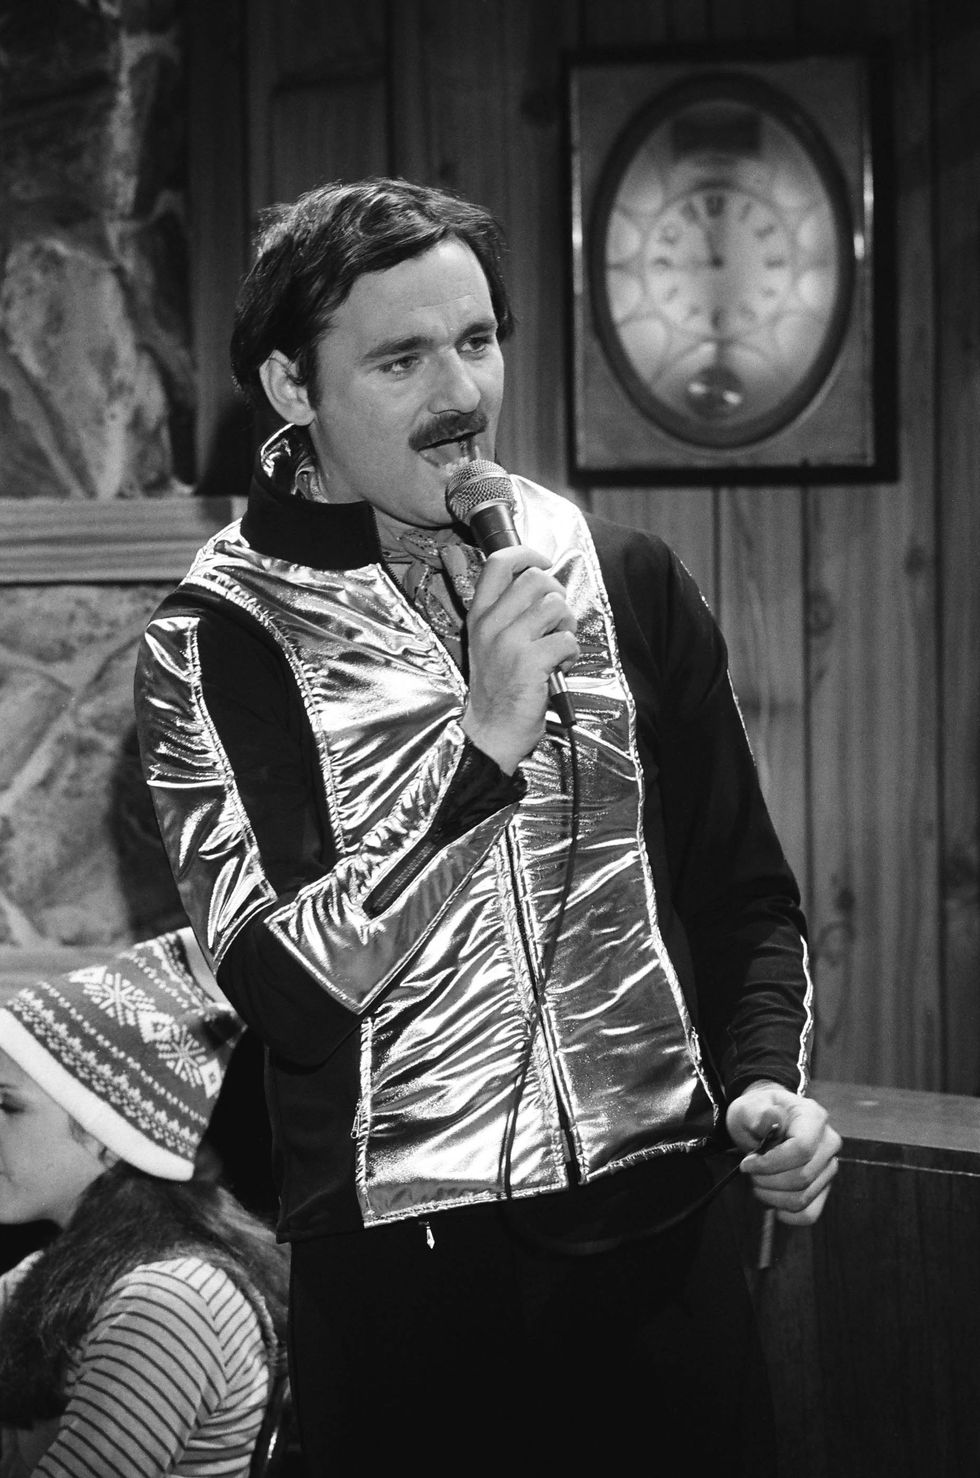 Bill Murray as Nick during the 'Nick Winters' skit on January 28, 1978 in SNL .